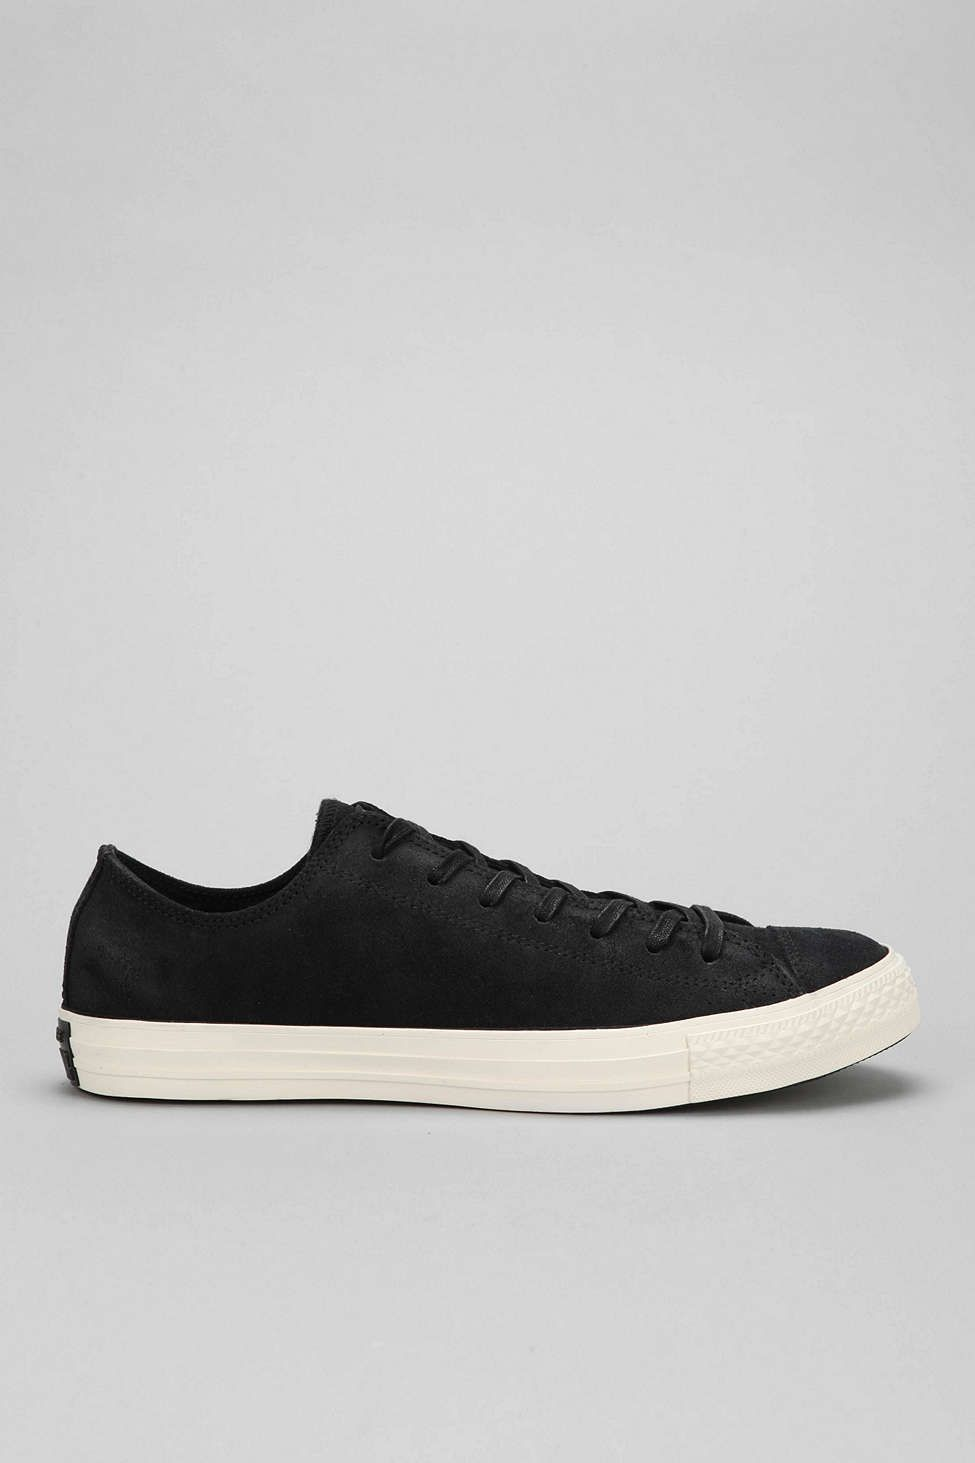 986807190f465b Converse Chuck Taylor All Star Burnt Suede Low-Top Men s Sneaker ...